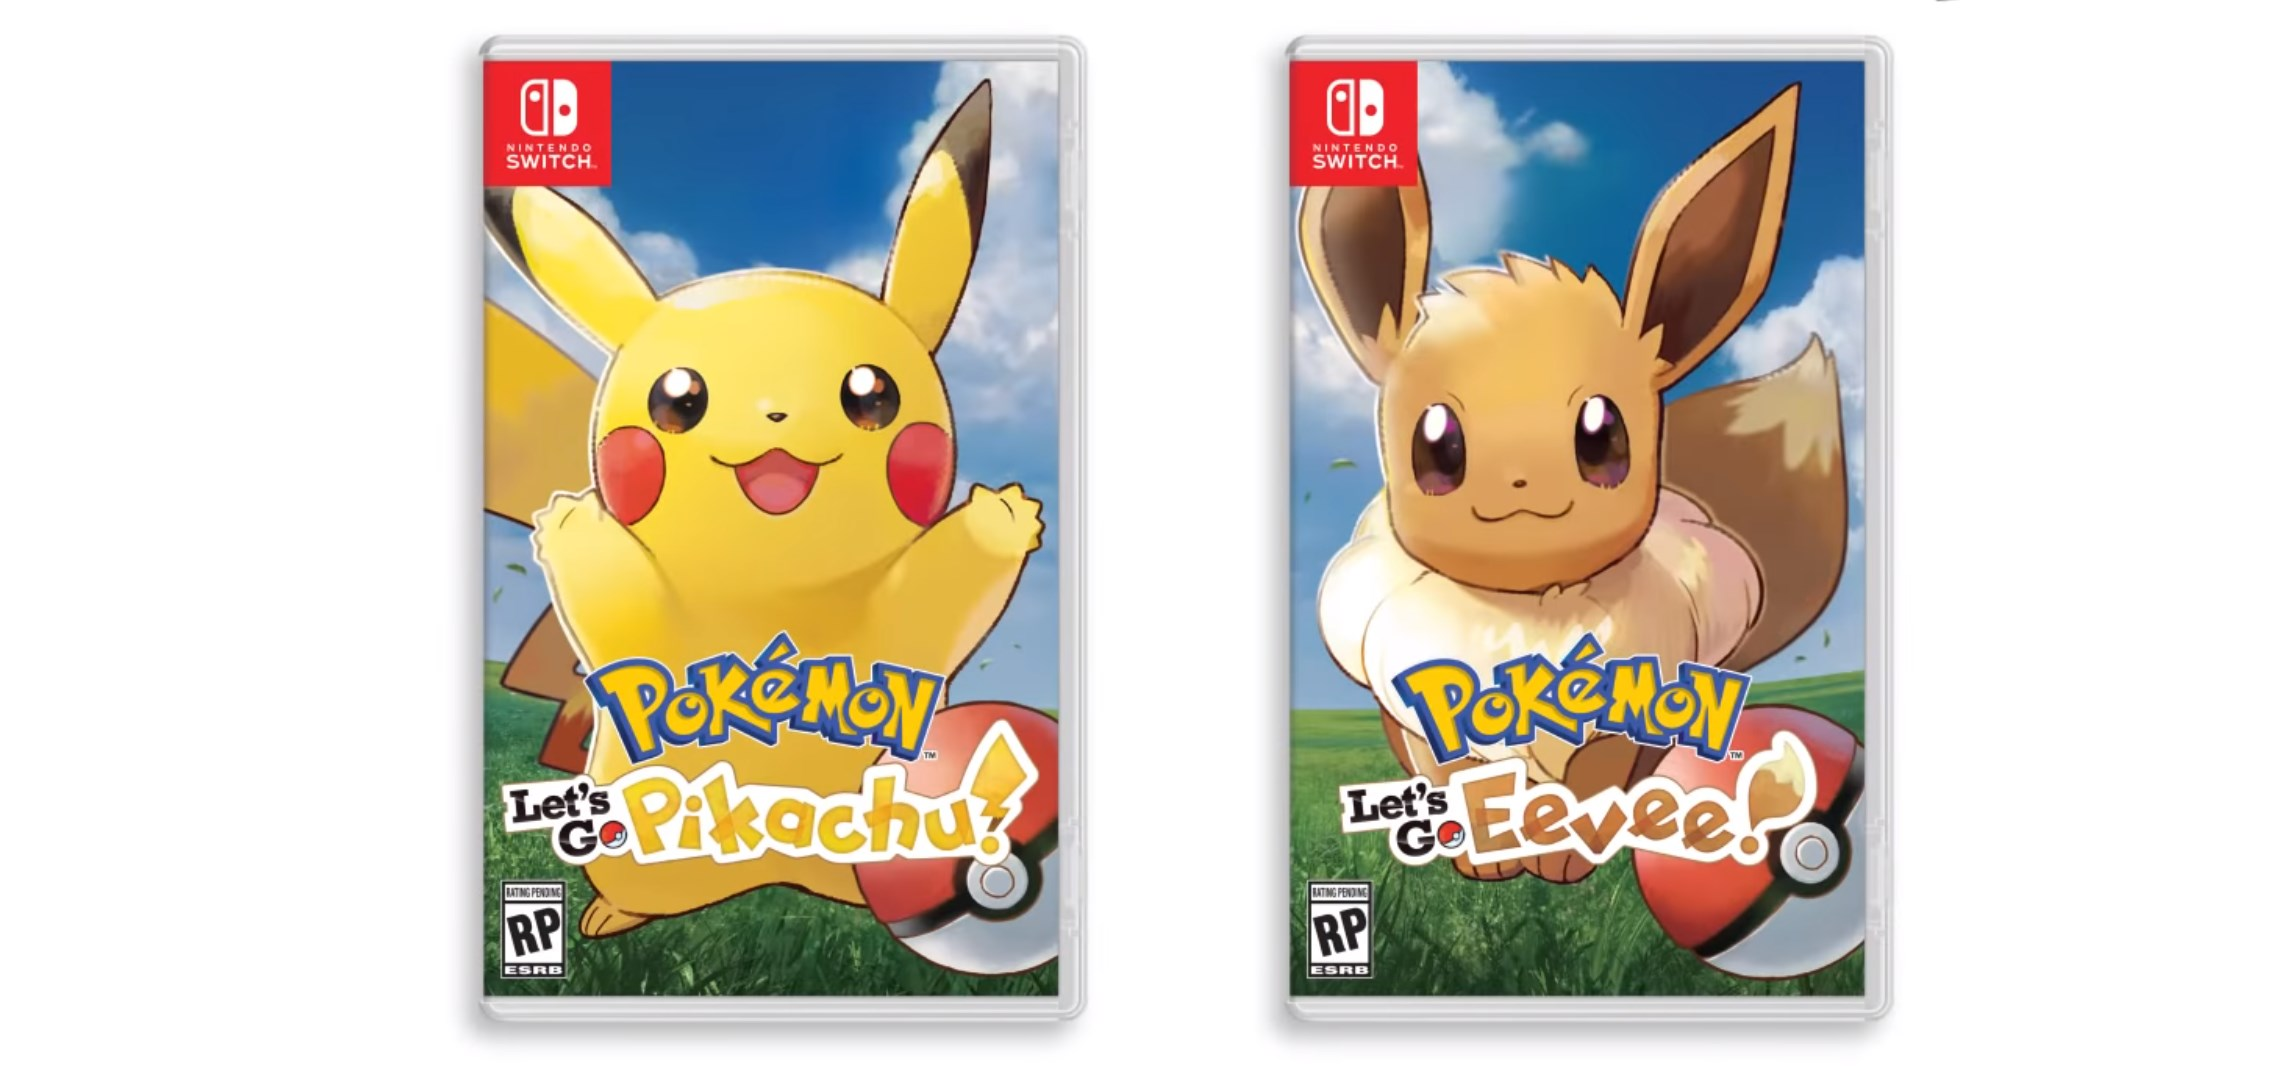 pokémon let's go pikachu eevee box art